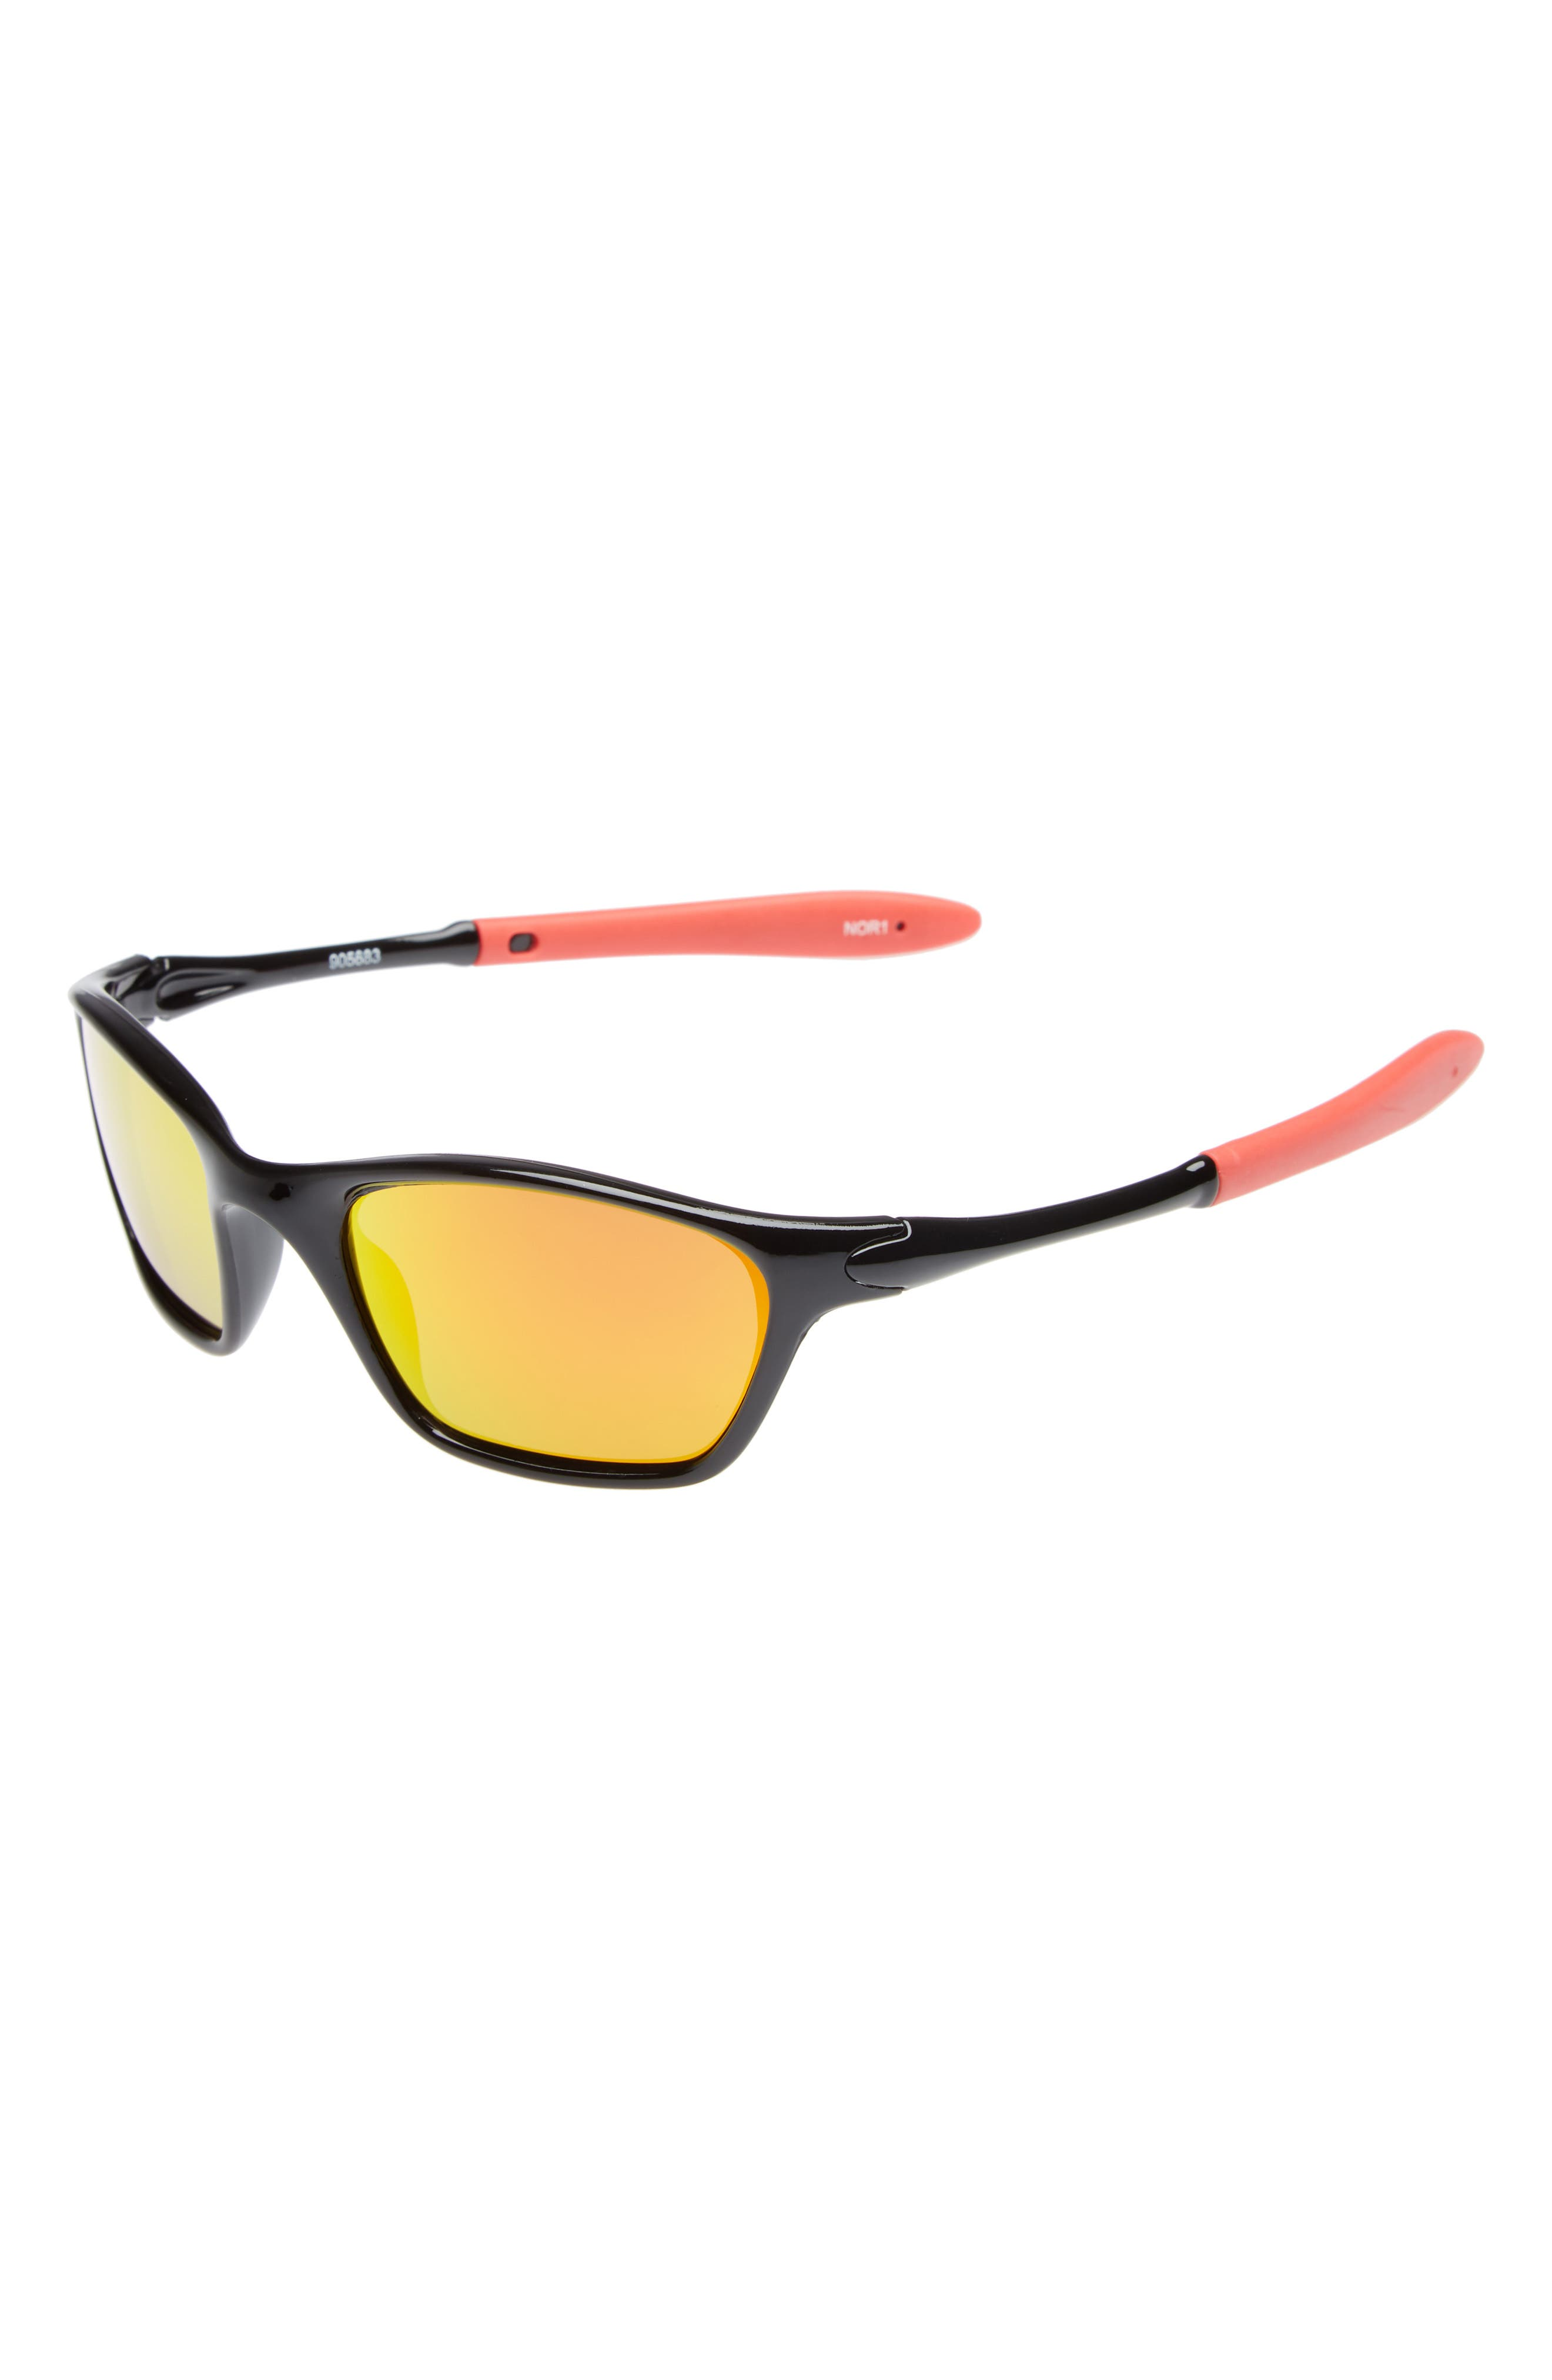 50mm Rubber Sport Sunglasses,                         Main,                         color,